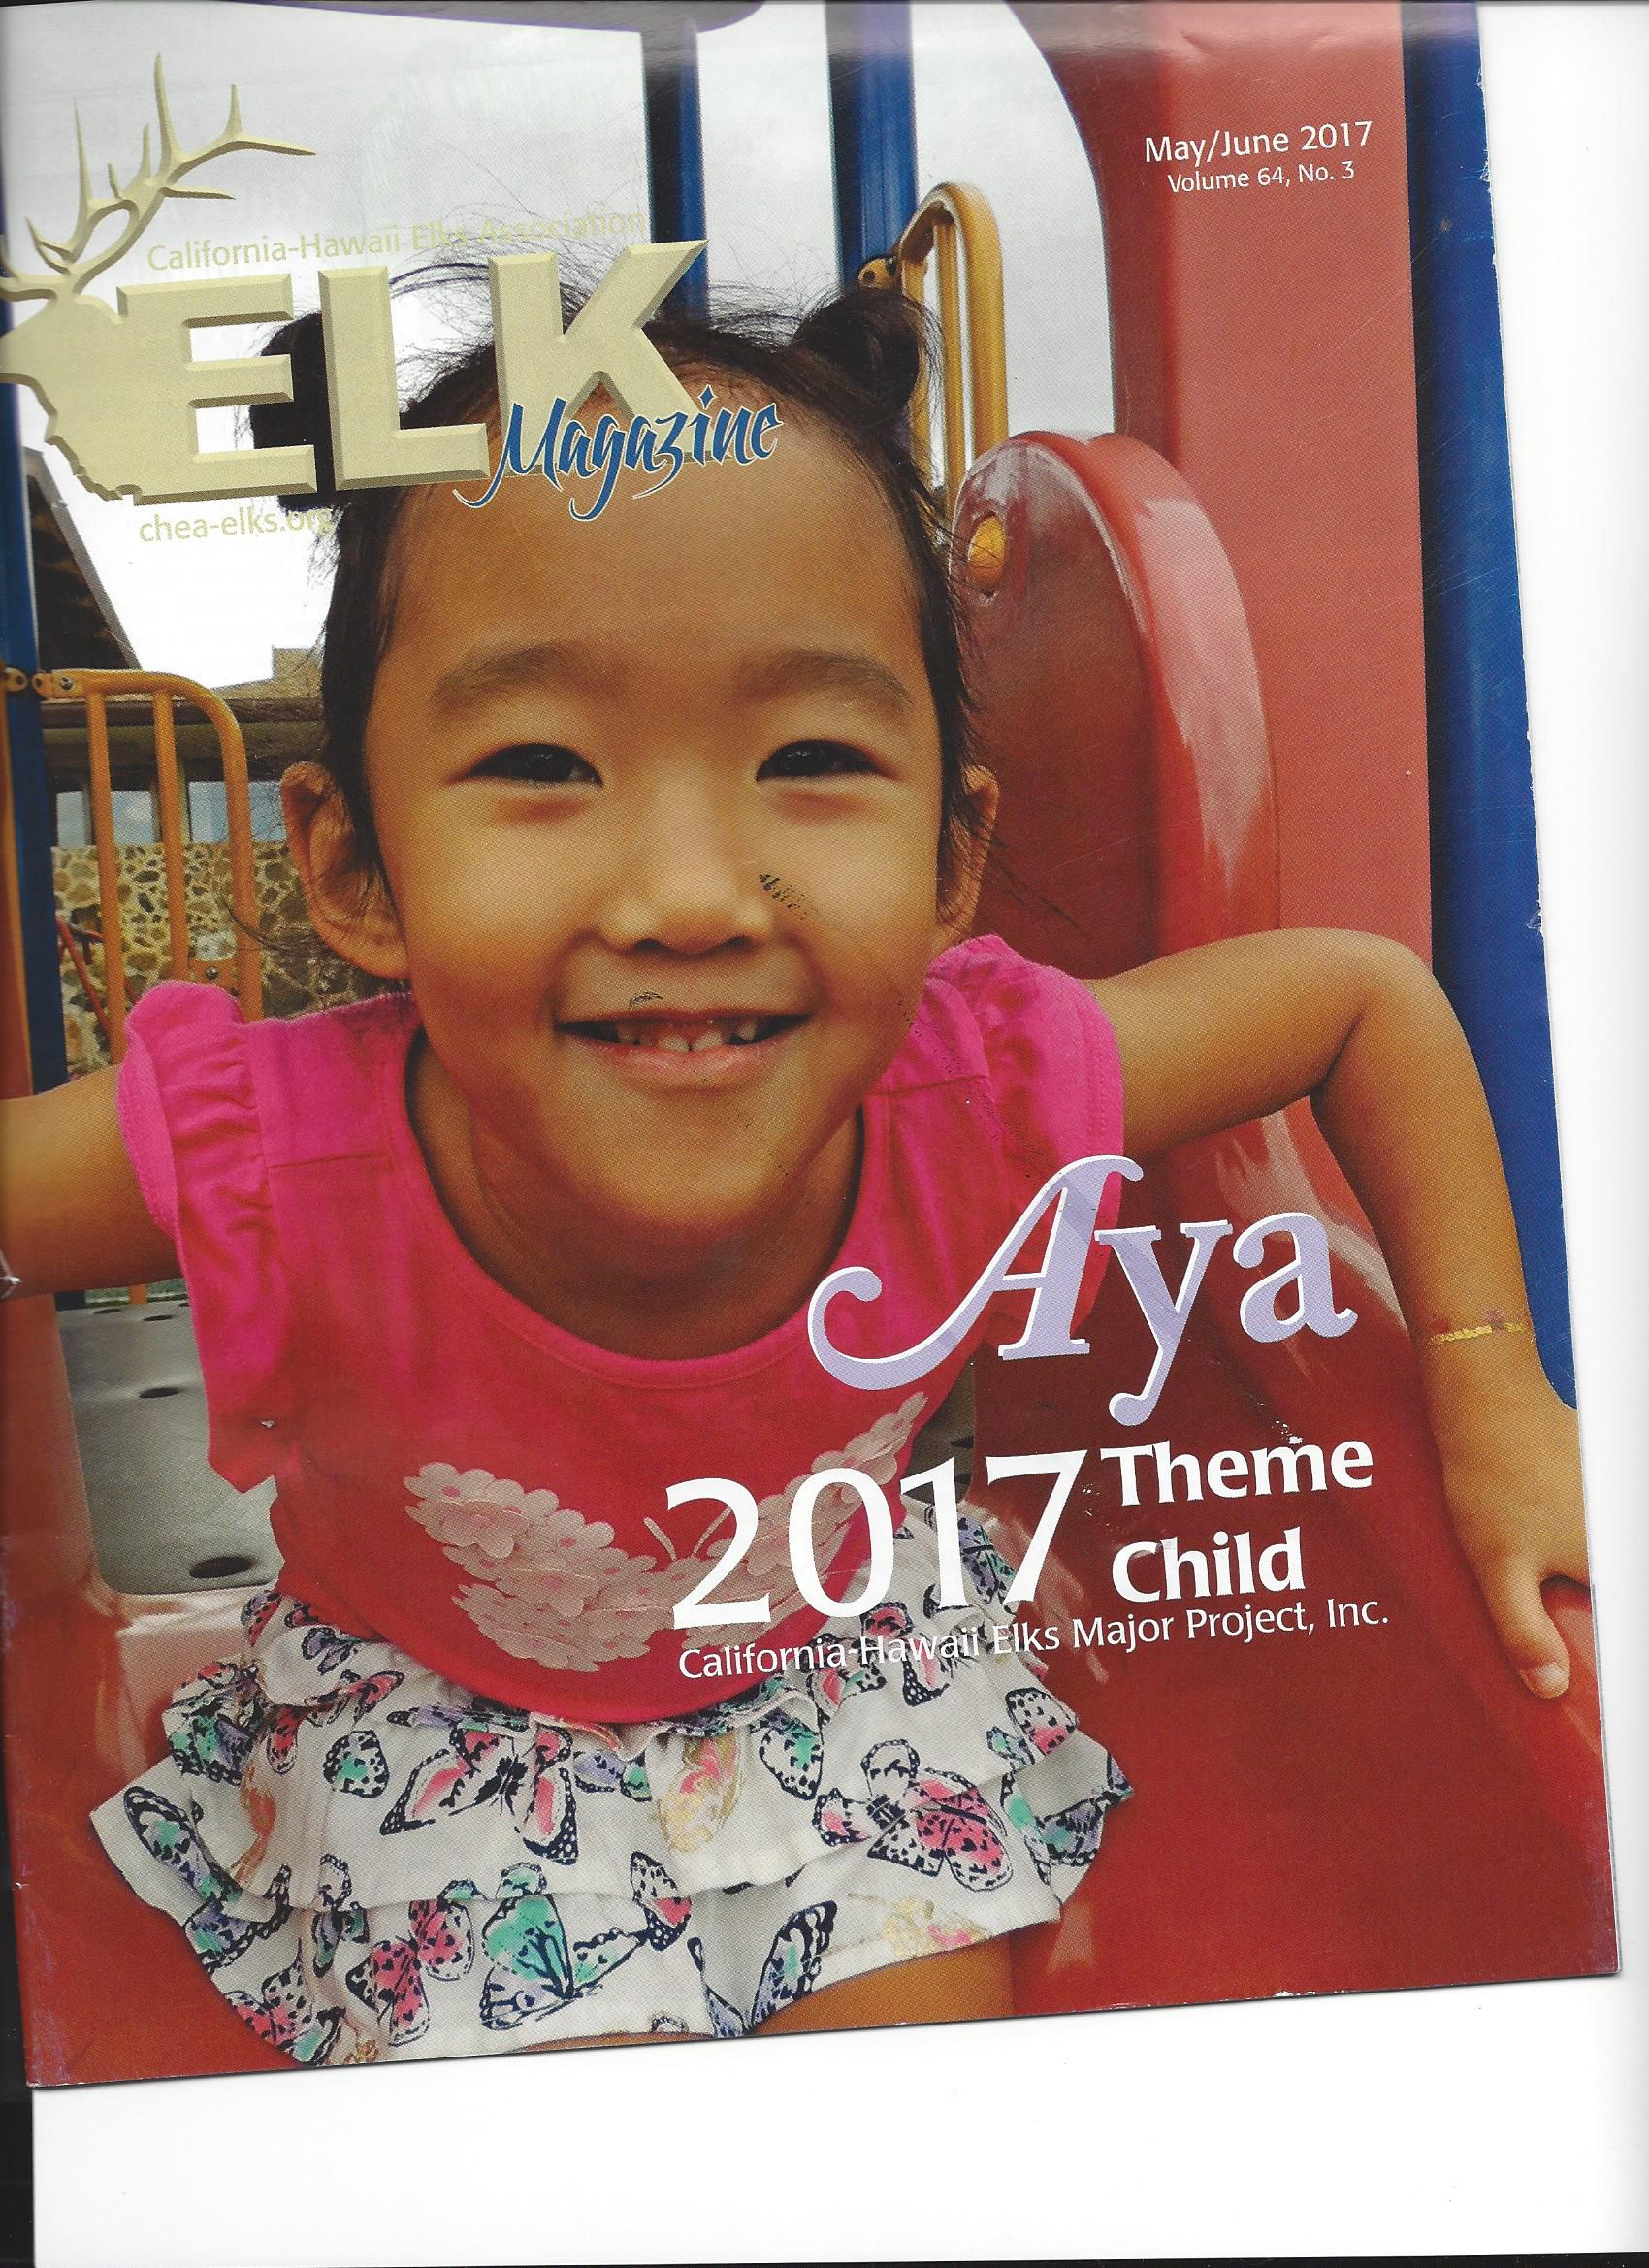 CHEA Theme Children for 2017 is Aya